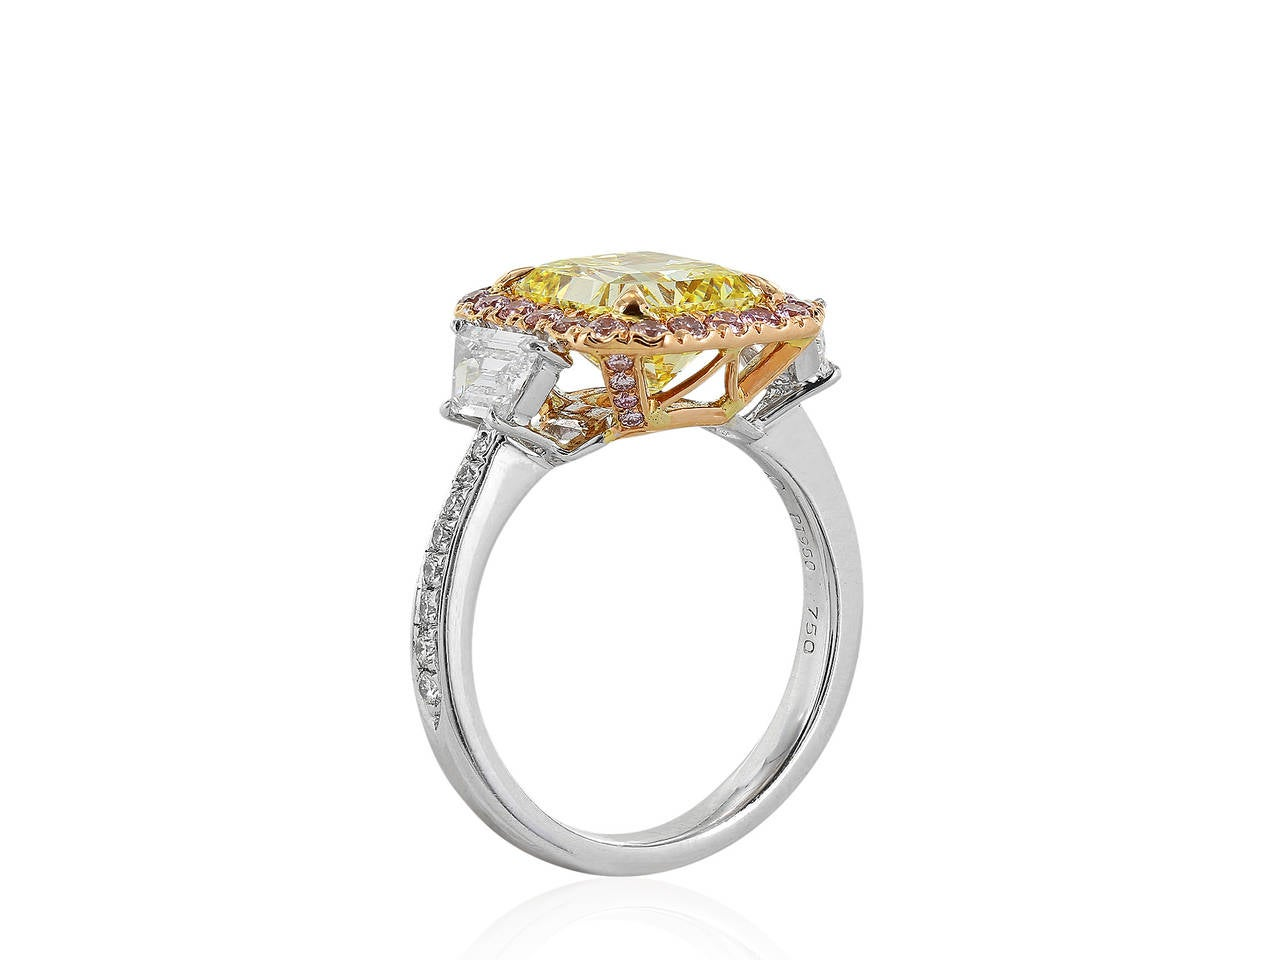 Stunning platinum and 18 karat pink gold 3 stone halo ring consisting of 1 radiant cut natural canary diamond weighing 3.02 carats having a color and clarity of FIY/VS1 with GIA certificate #15876346, the center stone is flanked by 2 colorless step